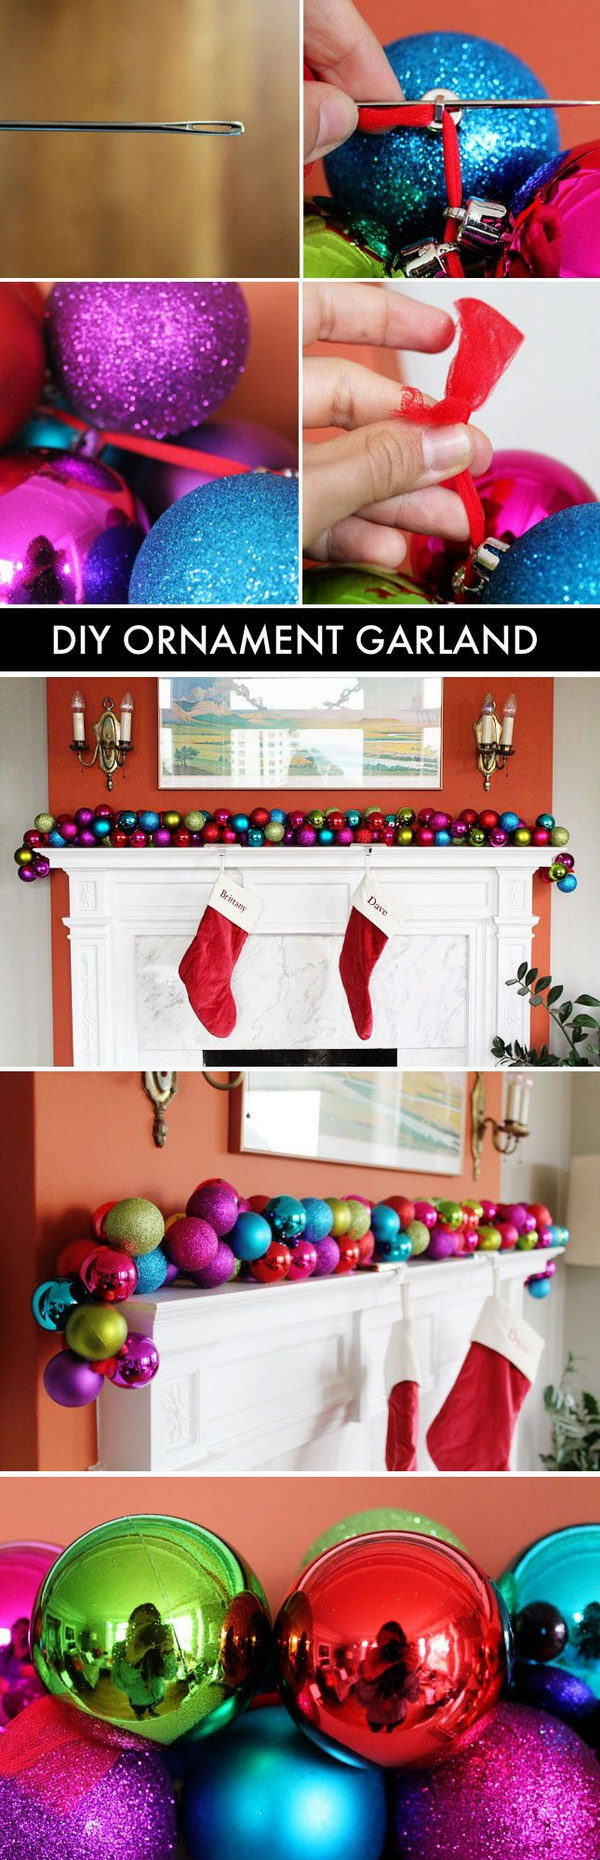 24 christmas decoration ideas - 25+ Easy & Cool DIY Christmas Decoration Ideas